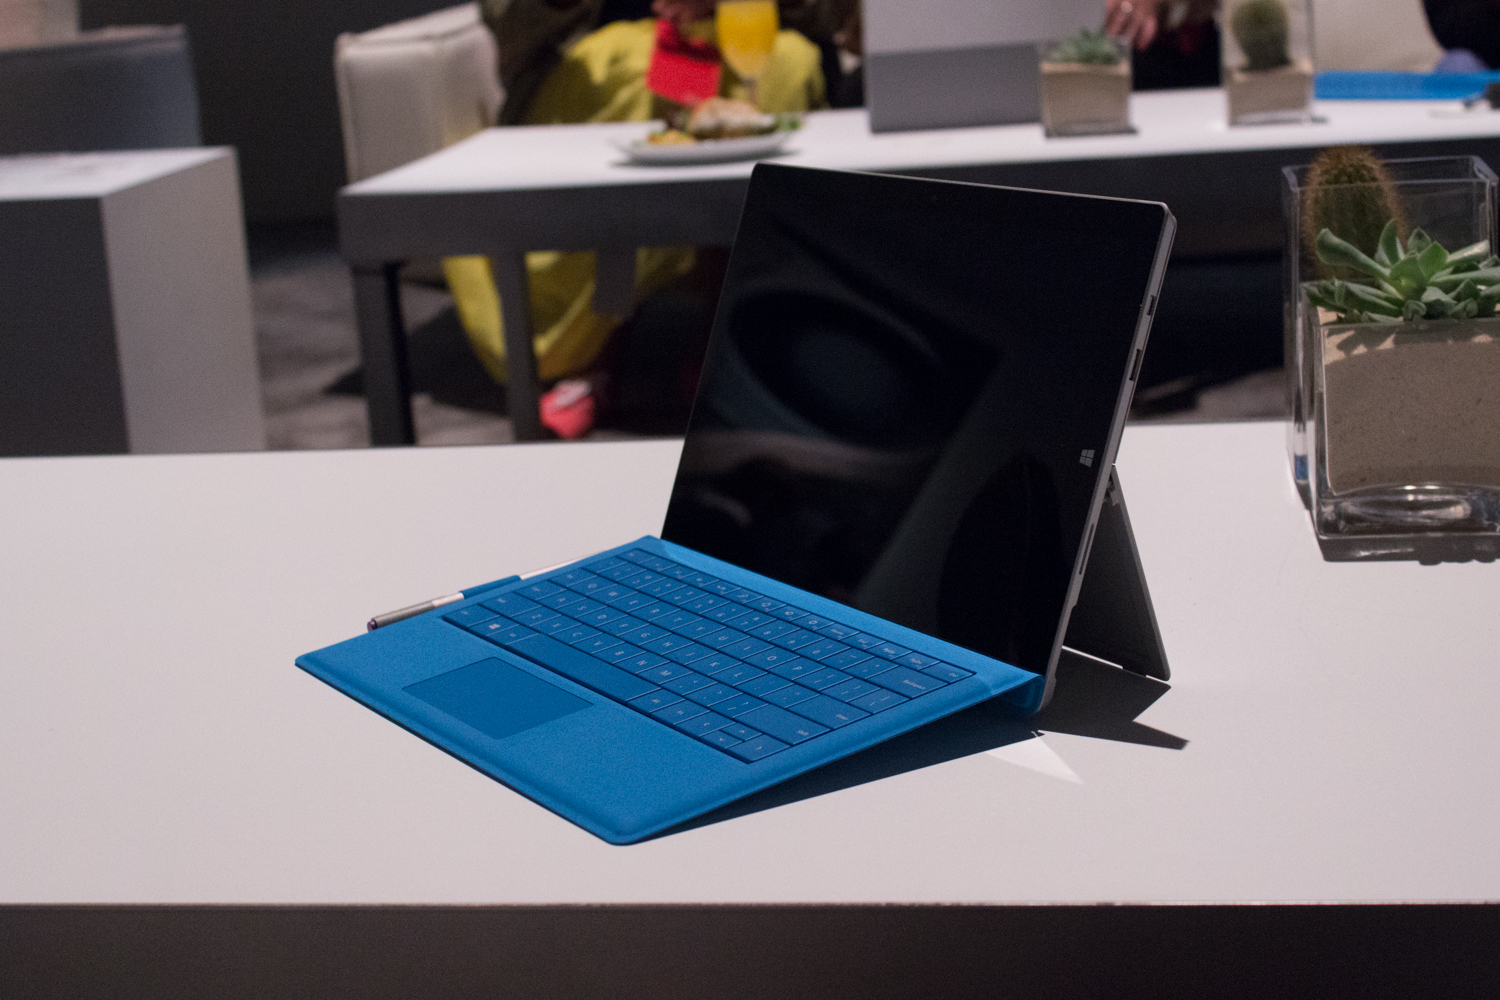 The Surface Pro 3 and its Type Cover.